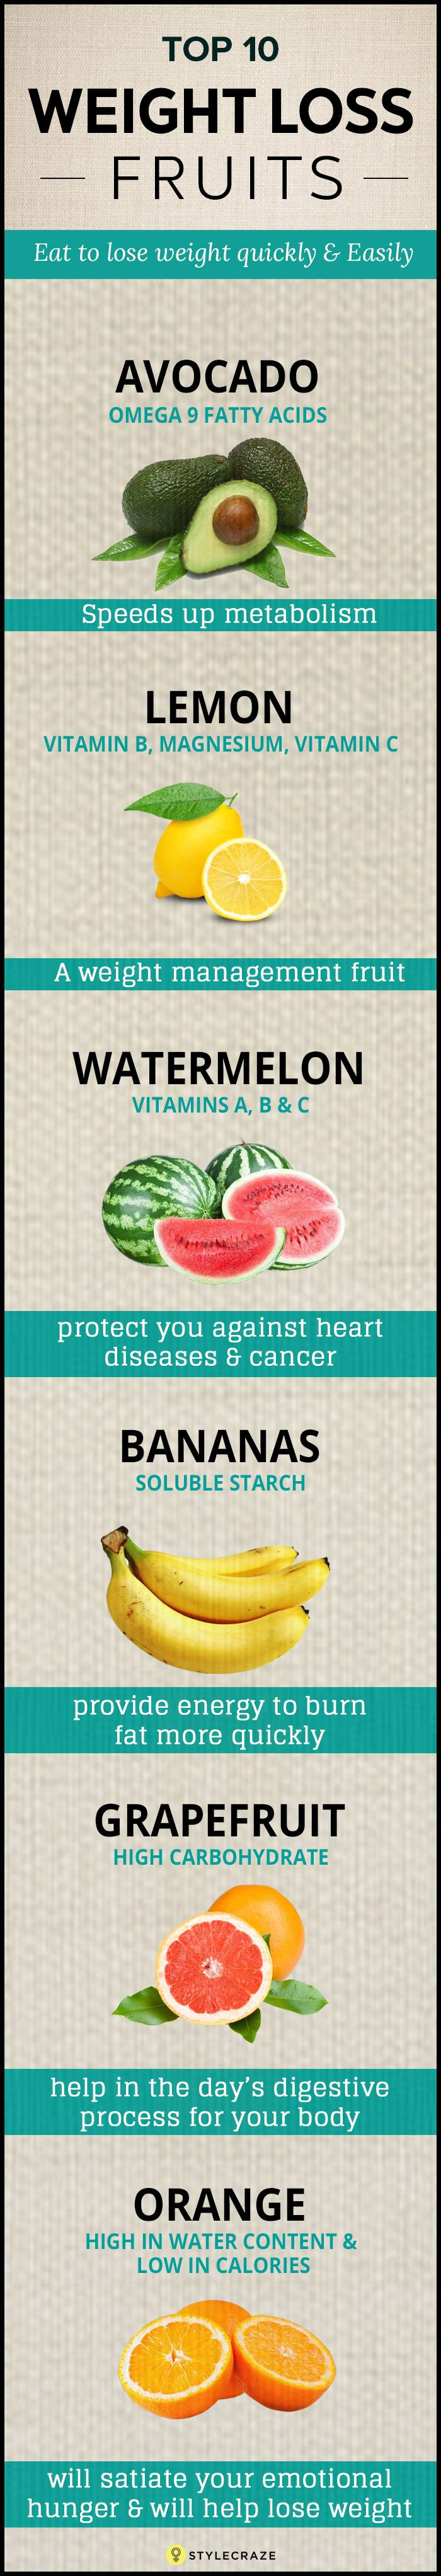 Weight Loss Fruits: List of power fruits to be taken in moderation that will do the trick to your health and weight.